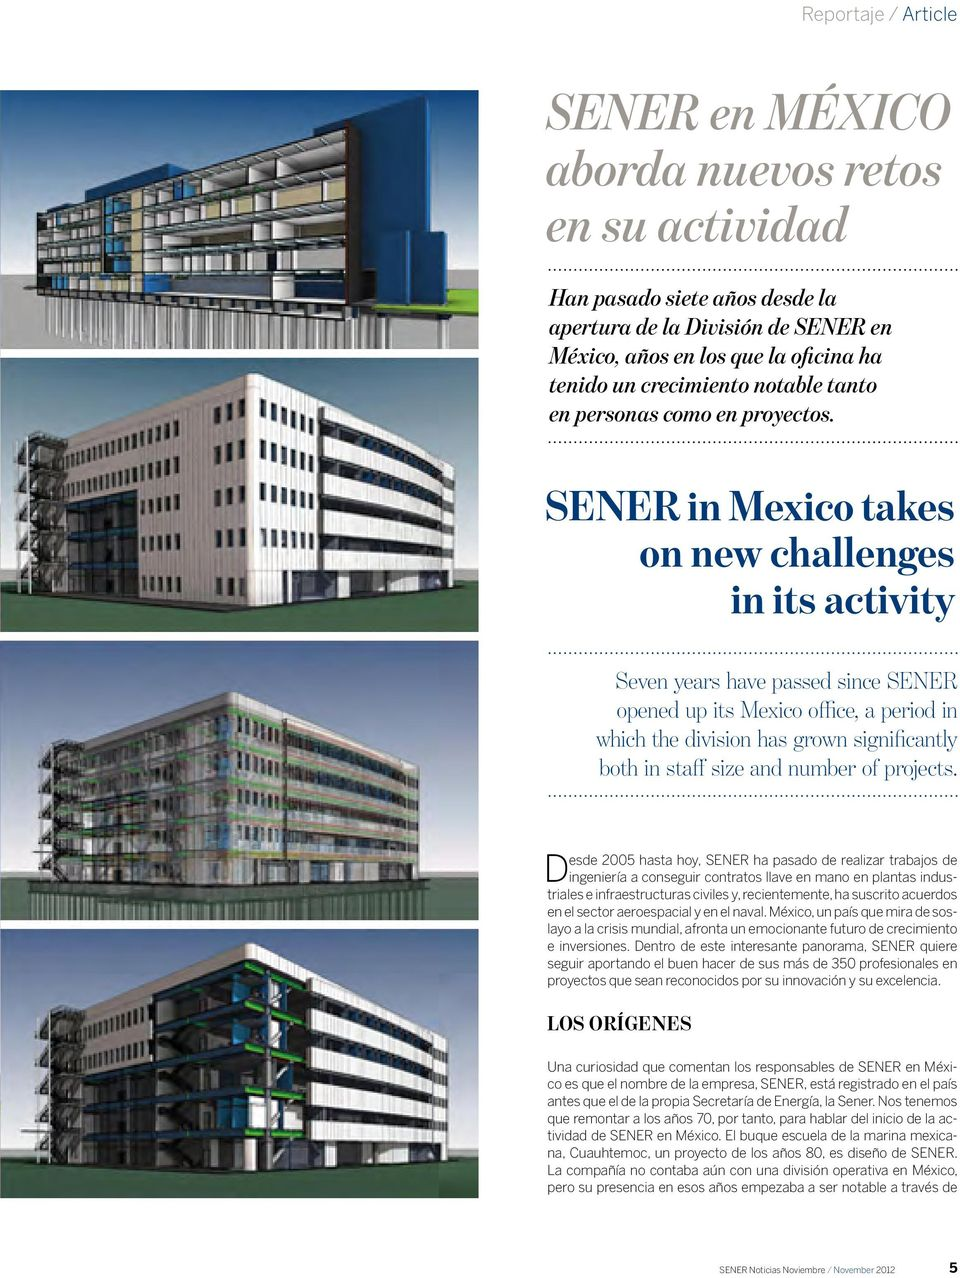 SENER in Mexico takes on new challenges in its activity Seven years have passed since SENER opened up its Mexico office, a period in which the division has grown significantly both in staff size and